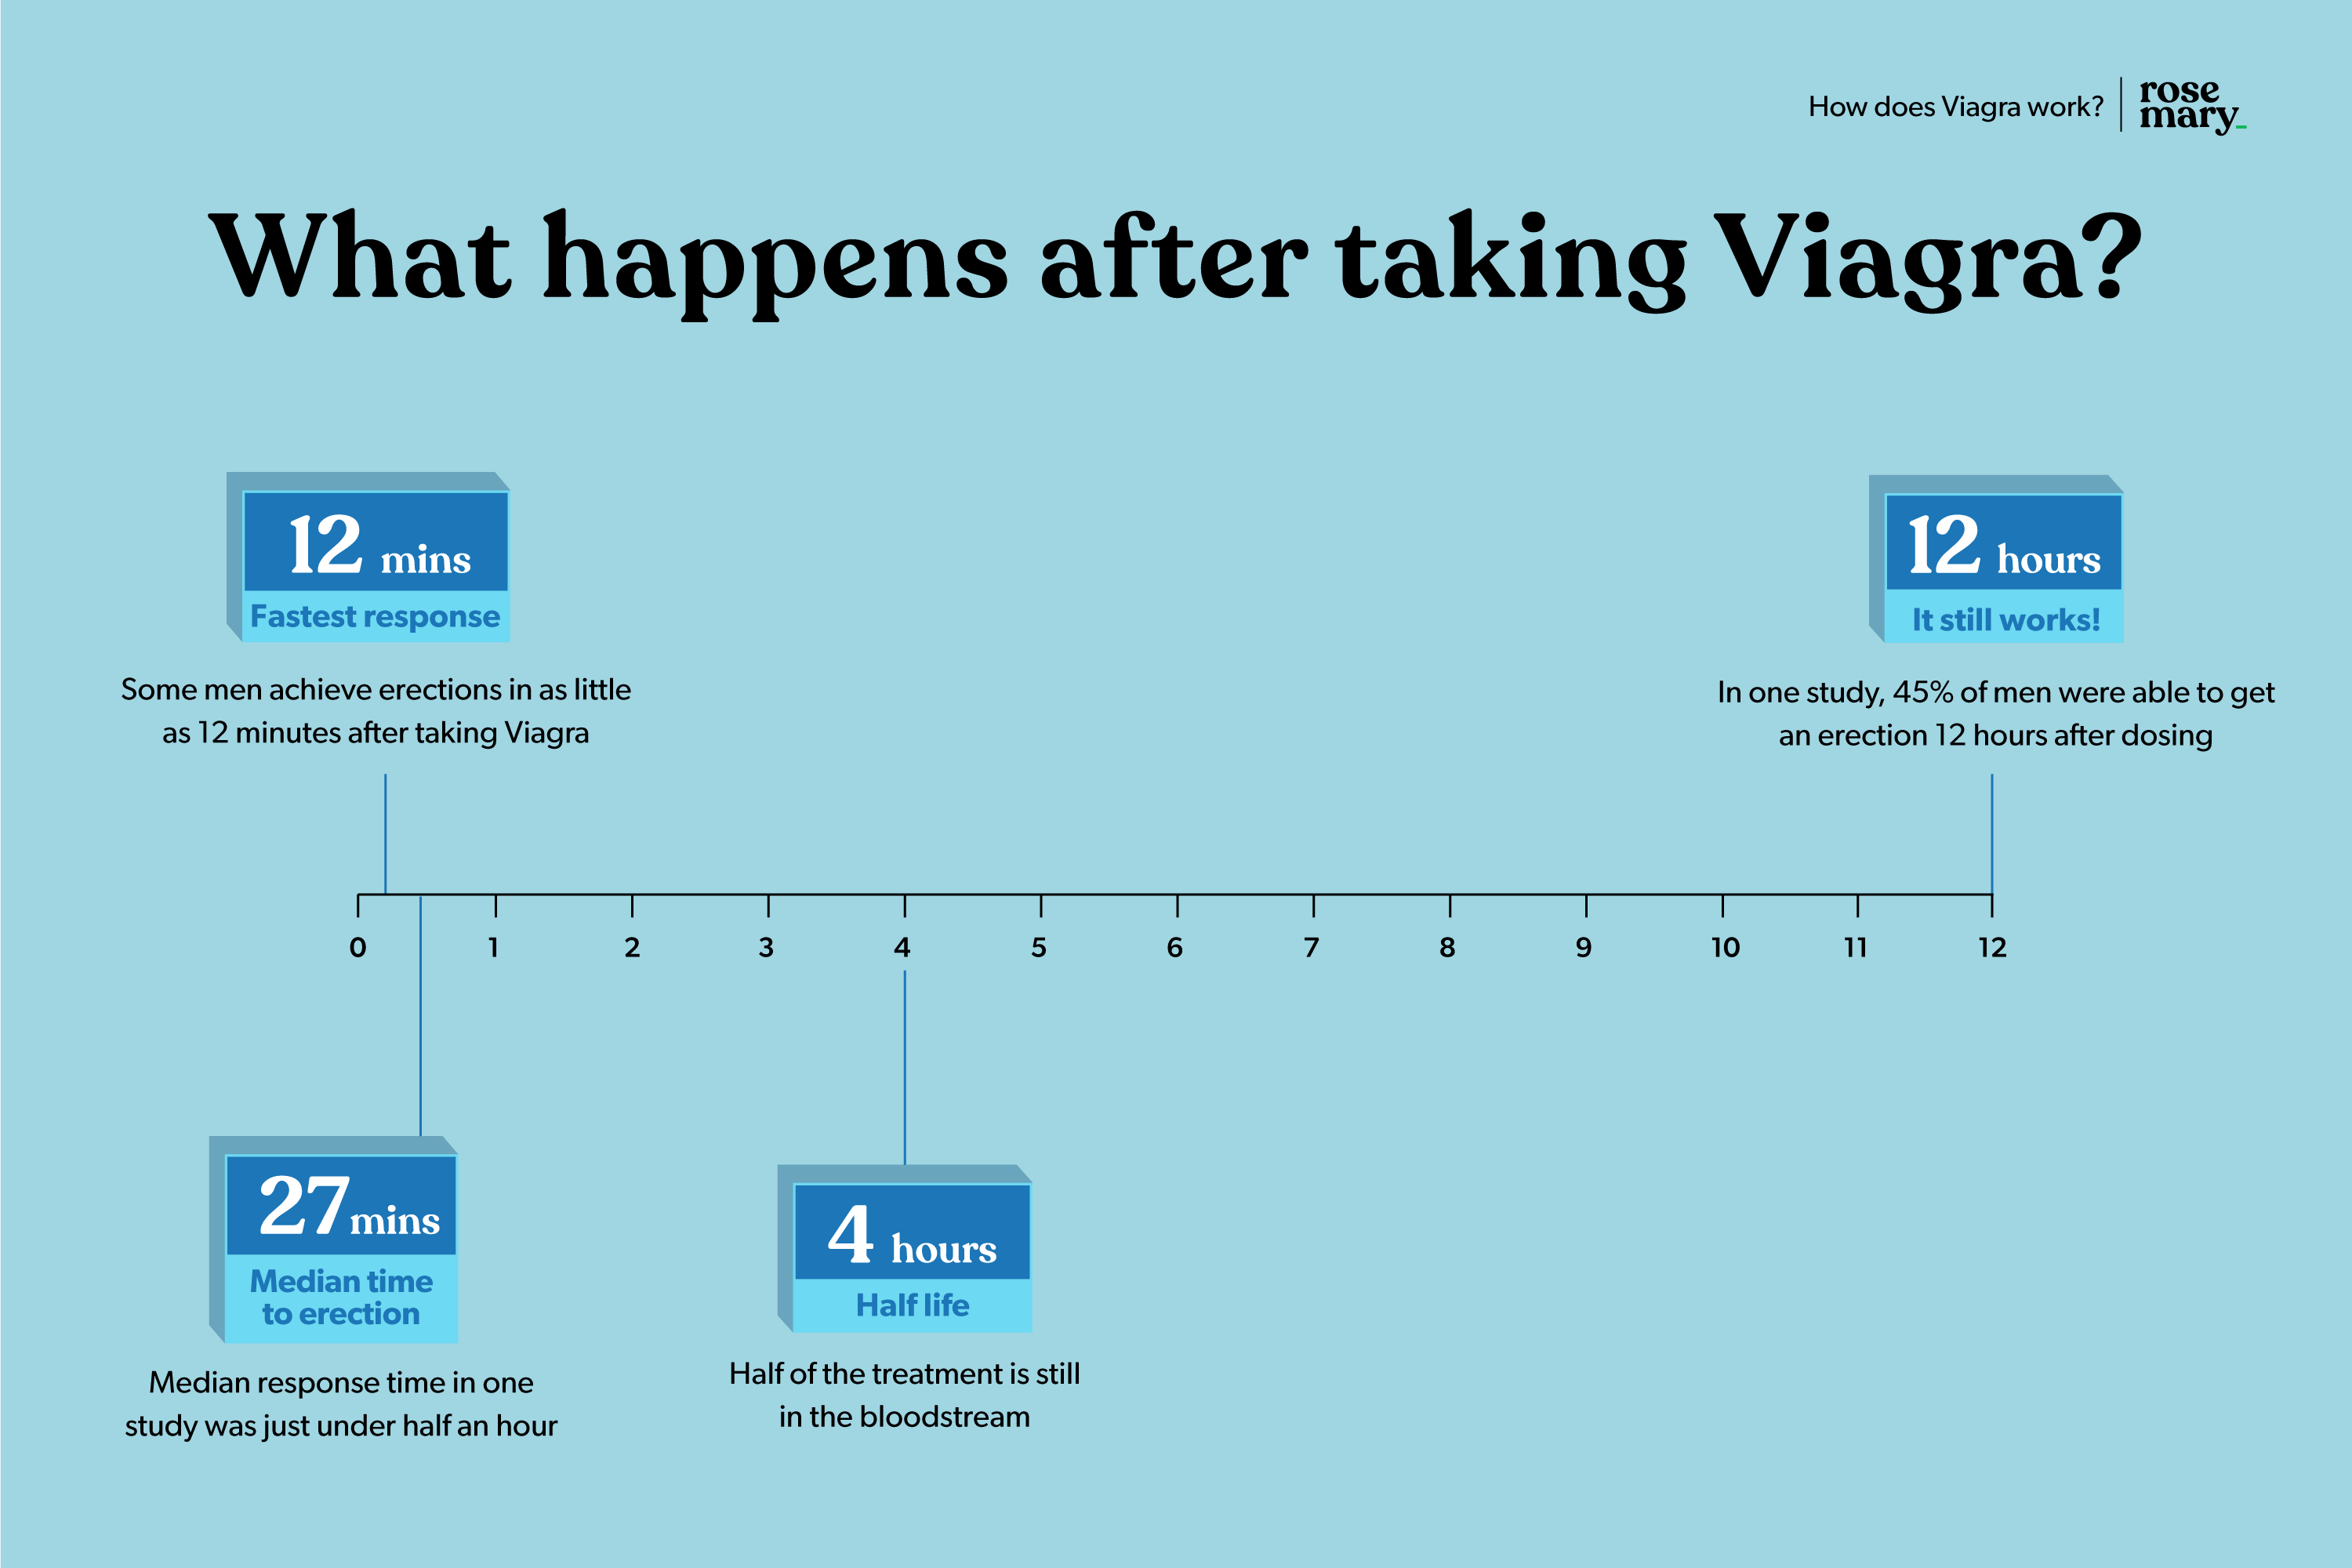 What happens after taking Viagra?